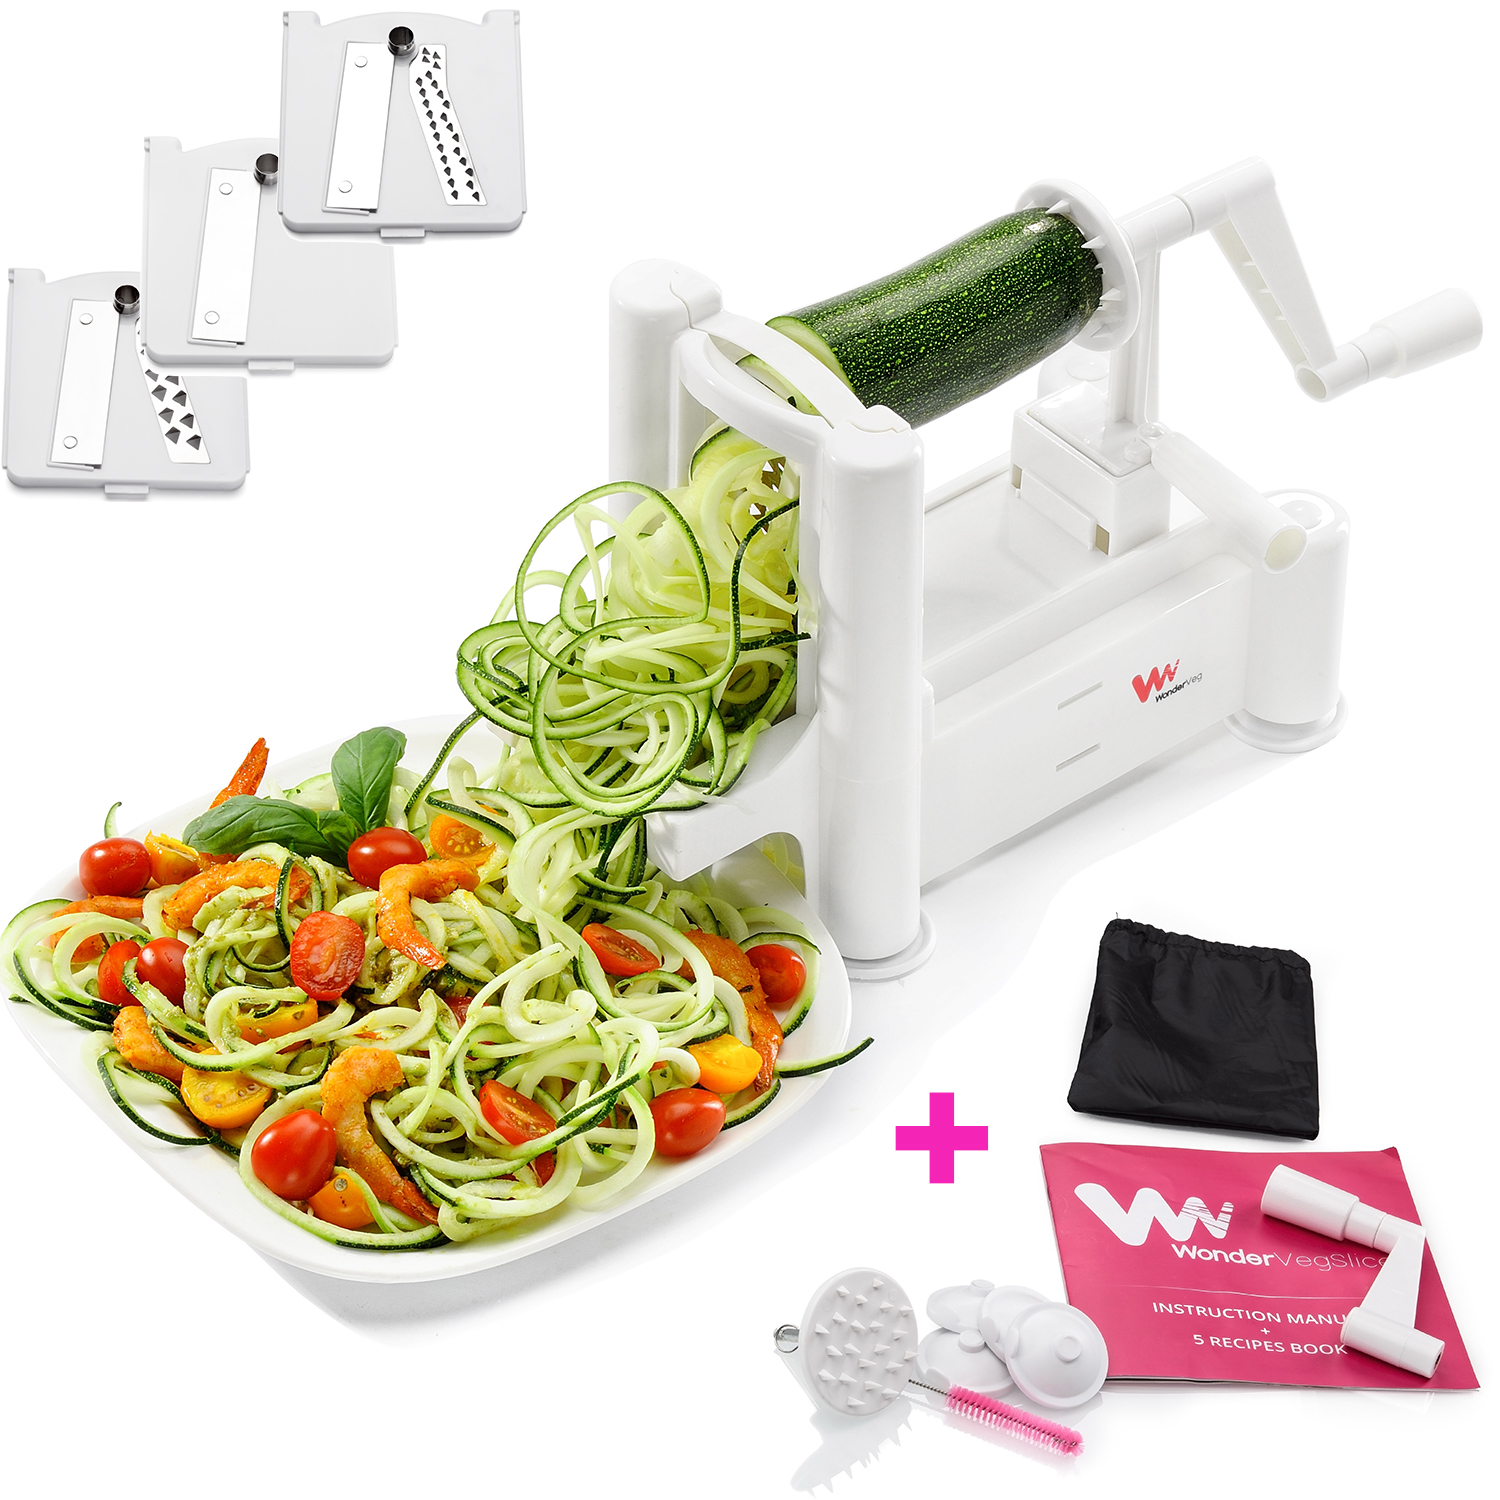 WonderVeg Vegetable Spiralizer - Best for Zoodles